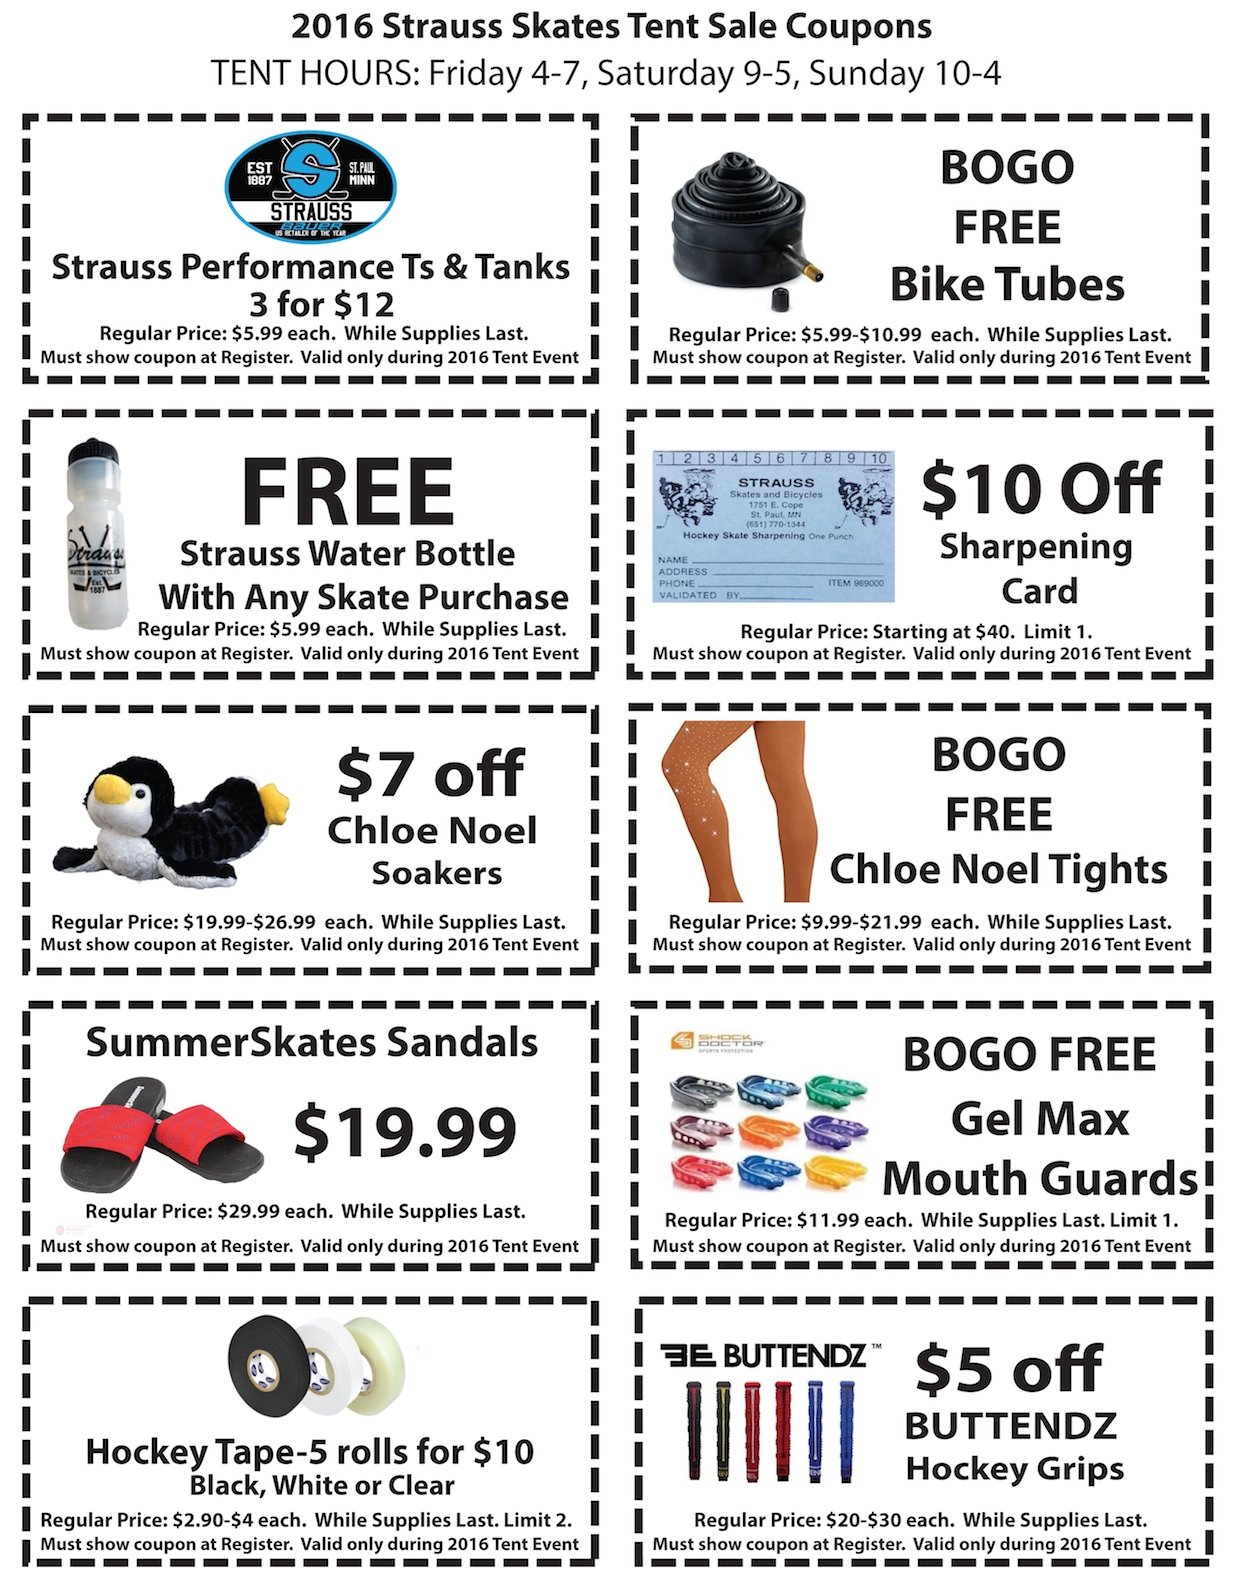 2016 Strauss Tent Sale Coupons